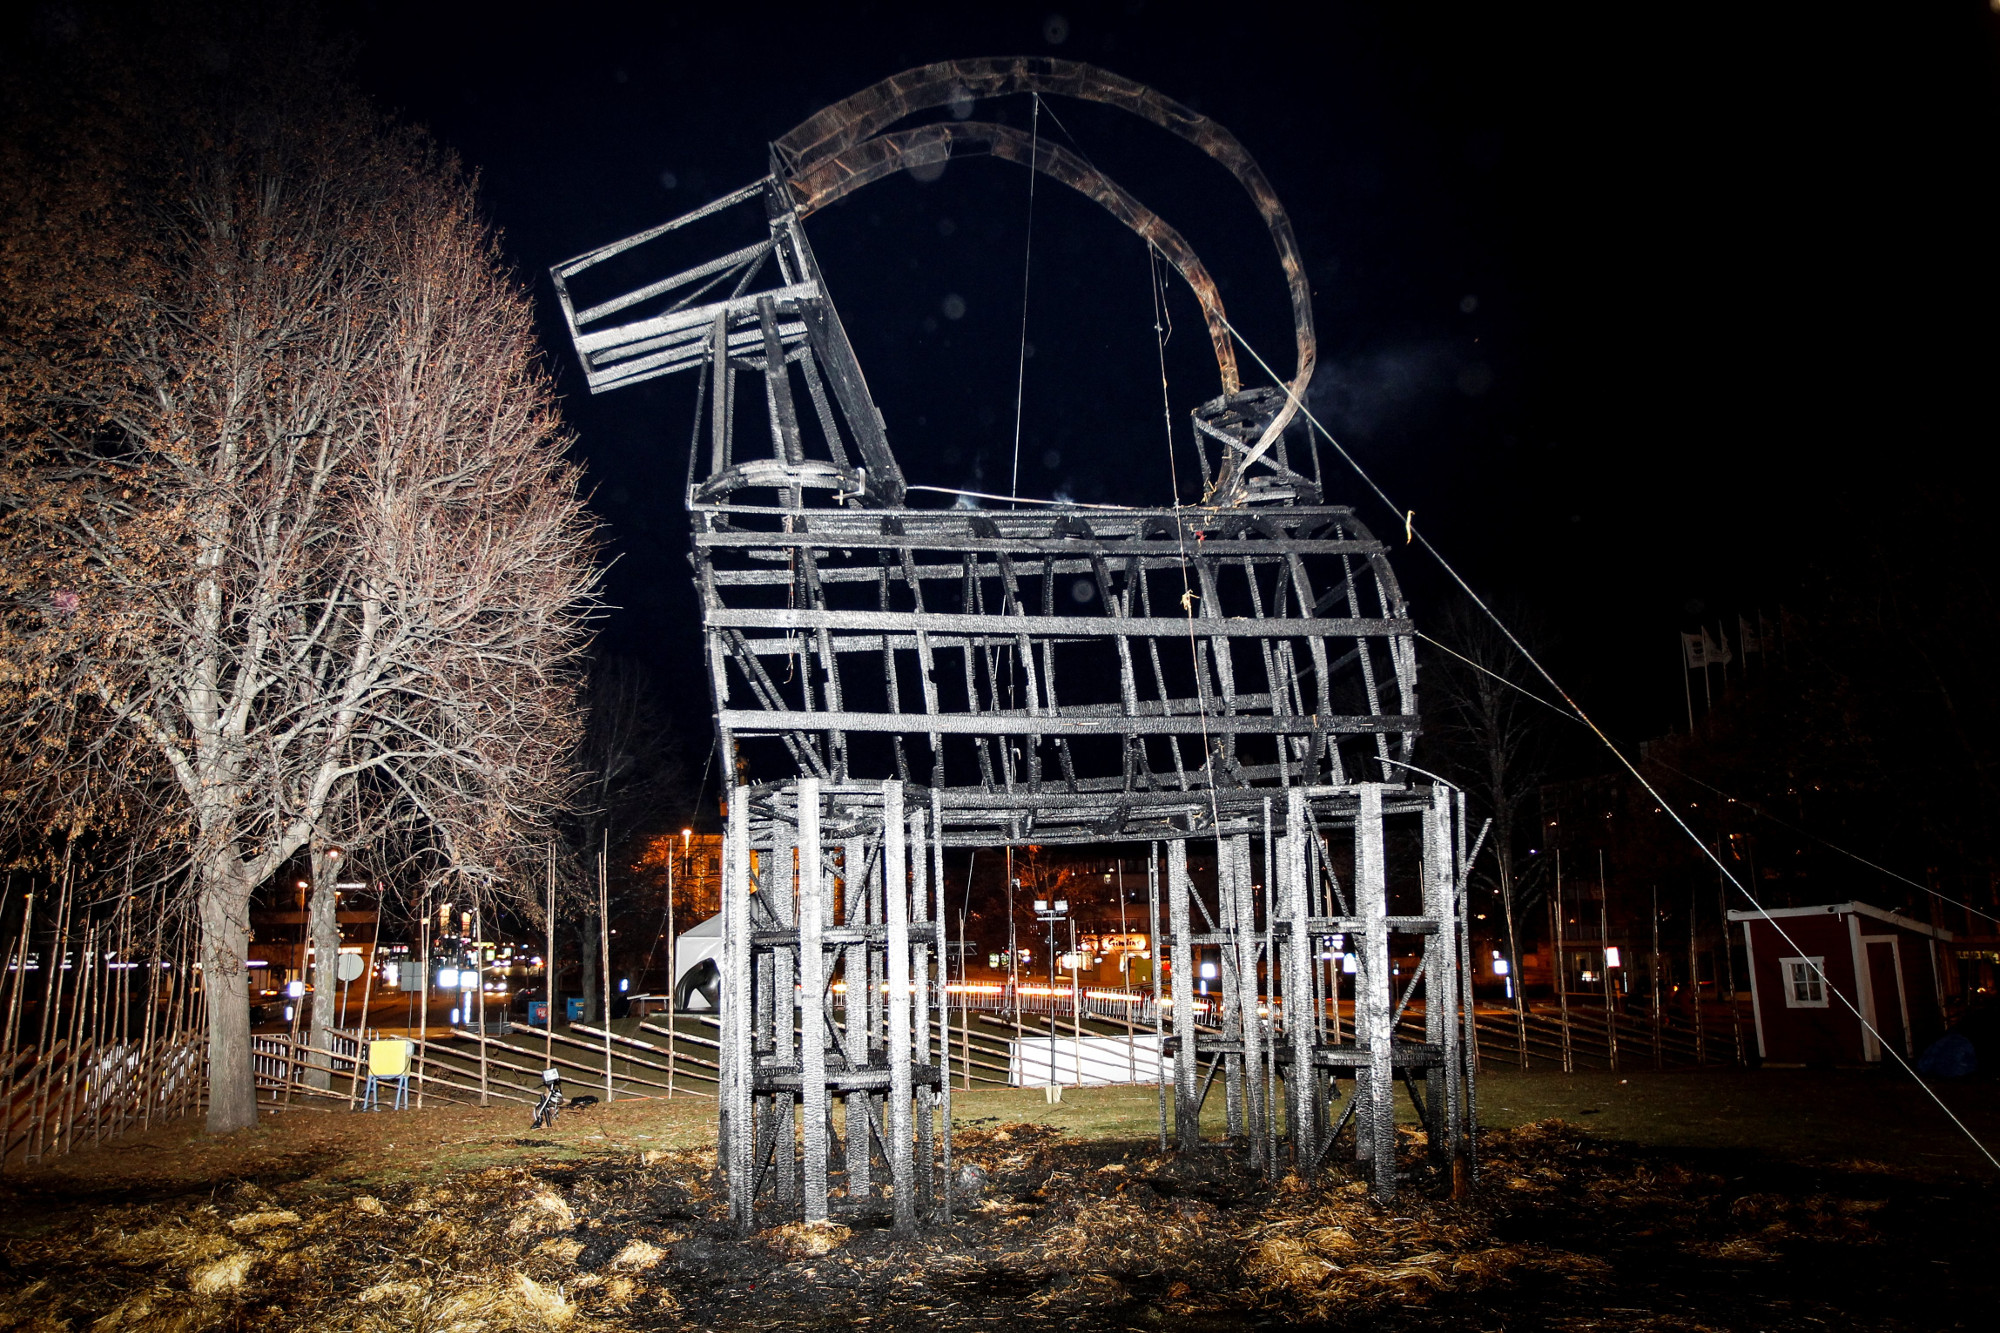 The remains of the Gavle Goat after the festivities in 2016